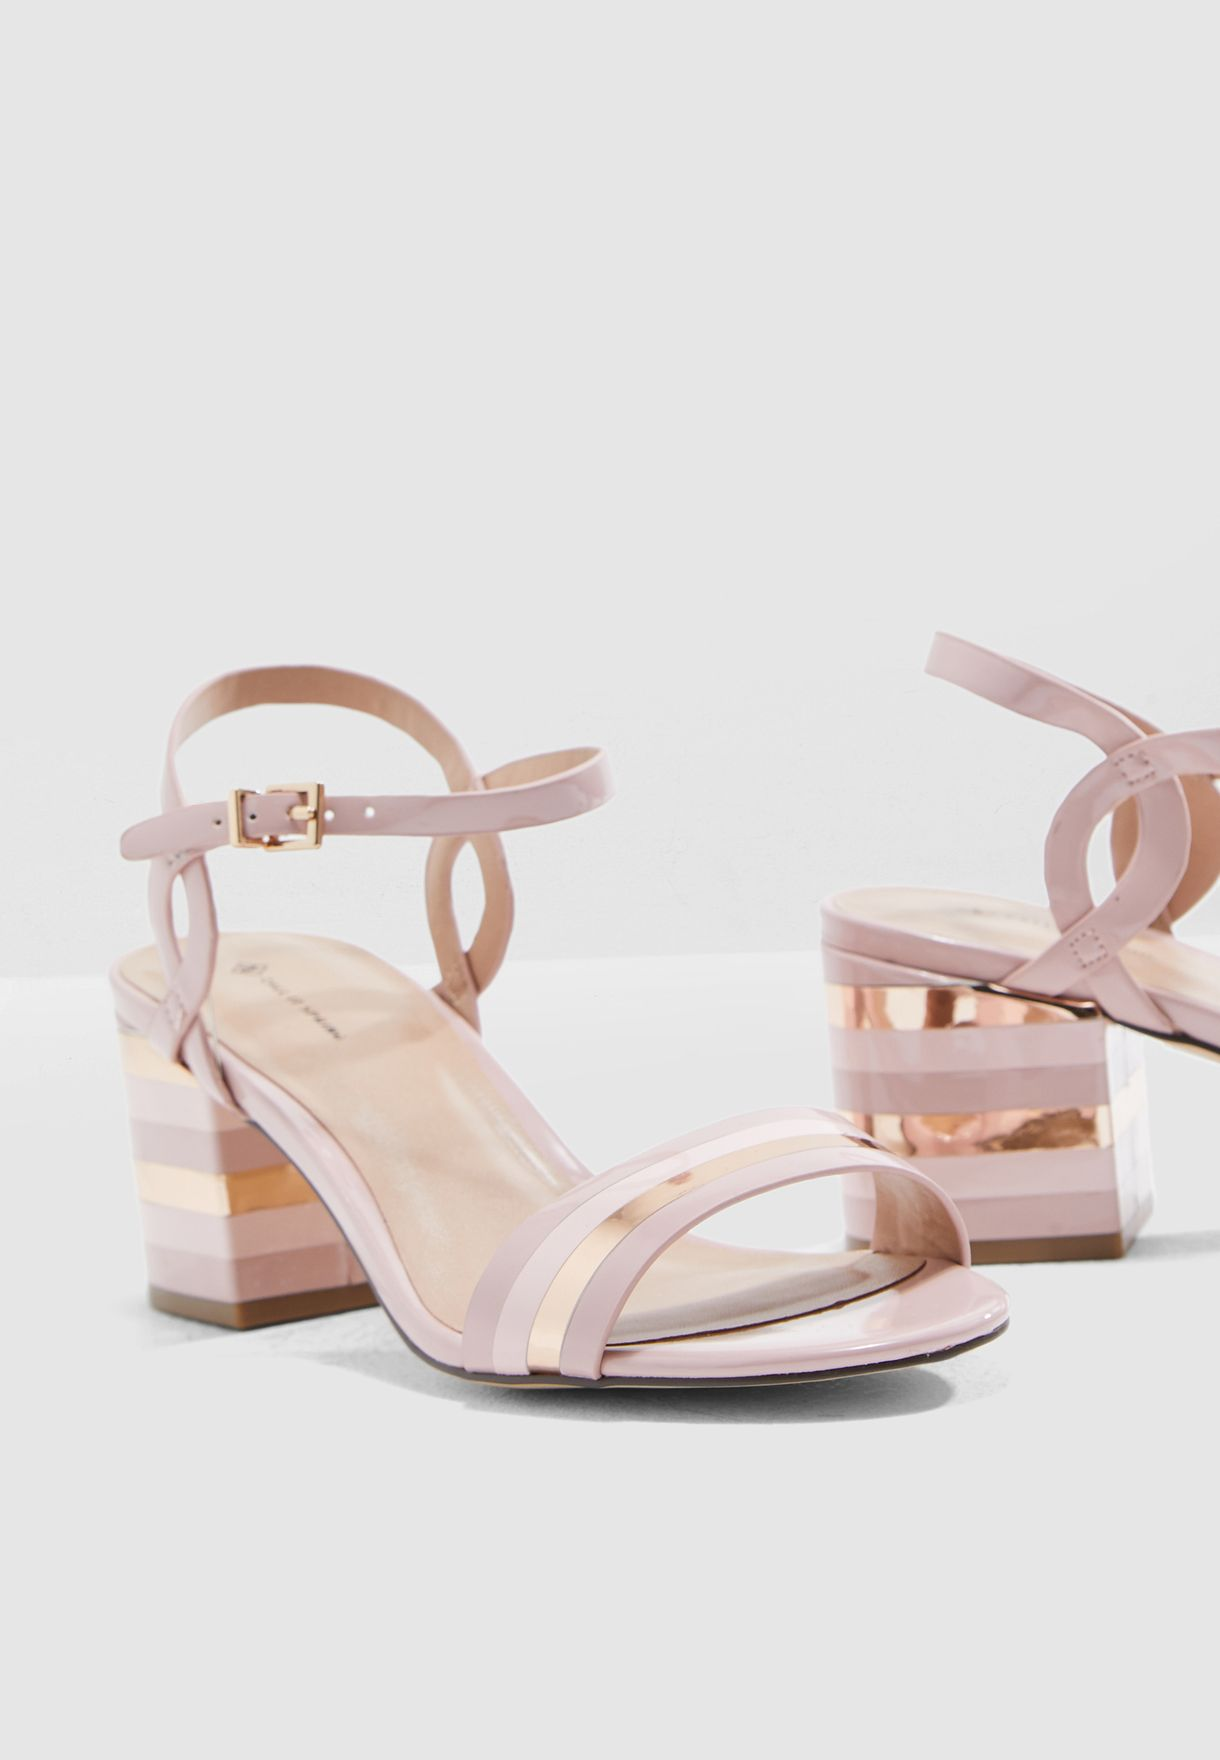 24aaaec5c Shop Call It Spring pink Coccinea Sandal COCCINEA680 for Women in ...